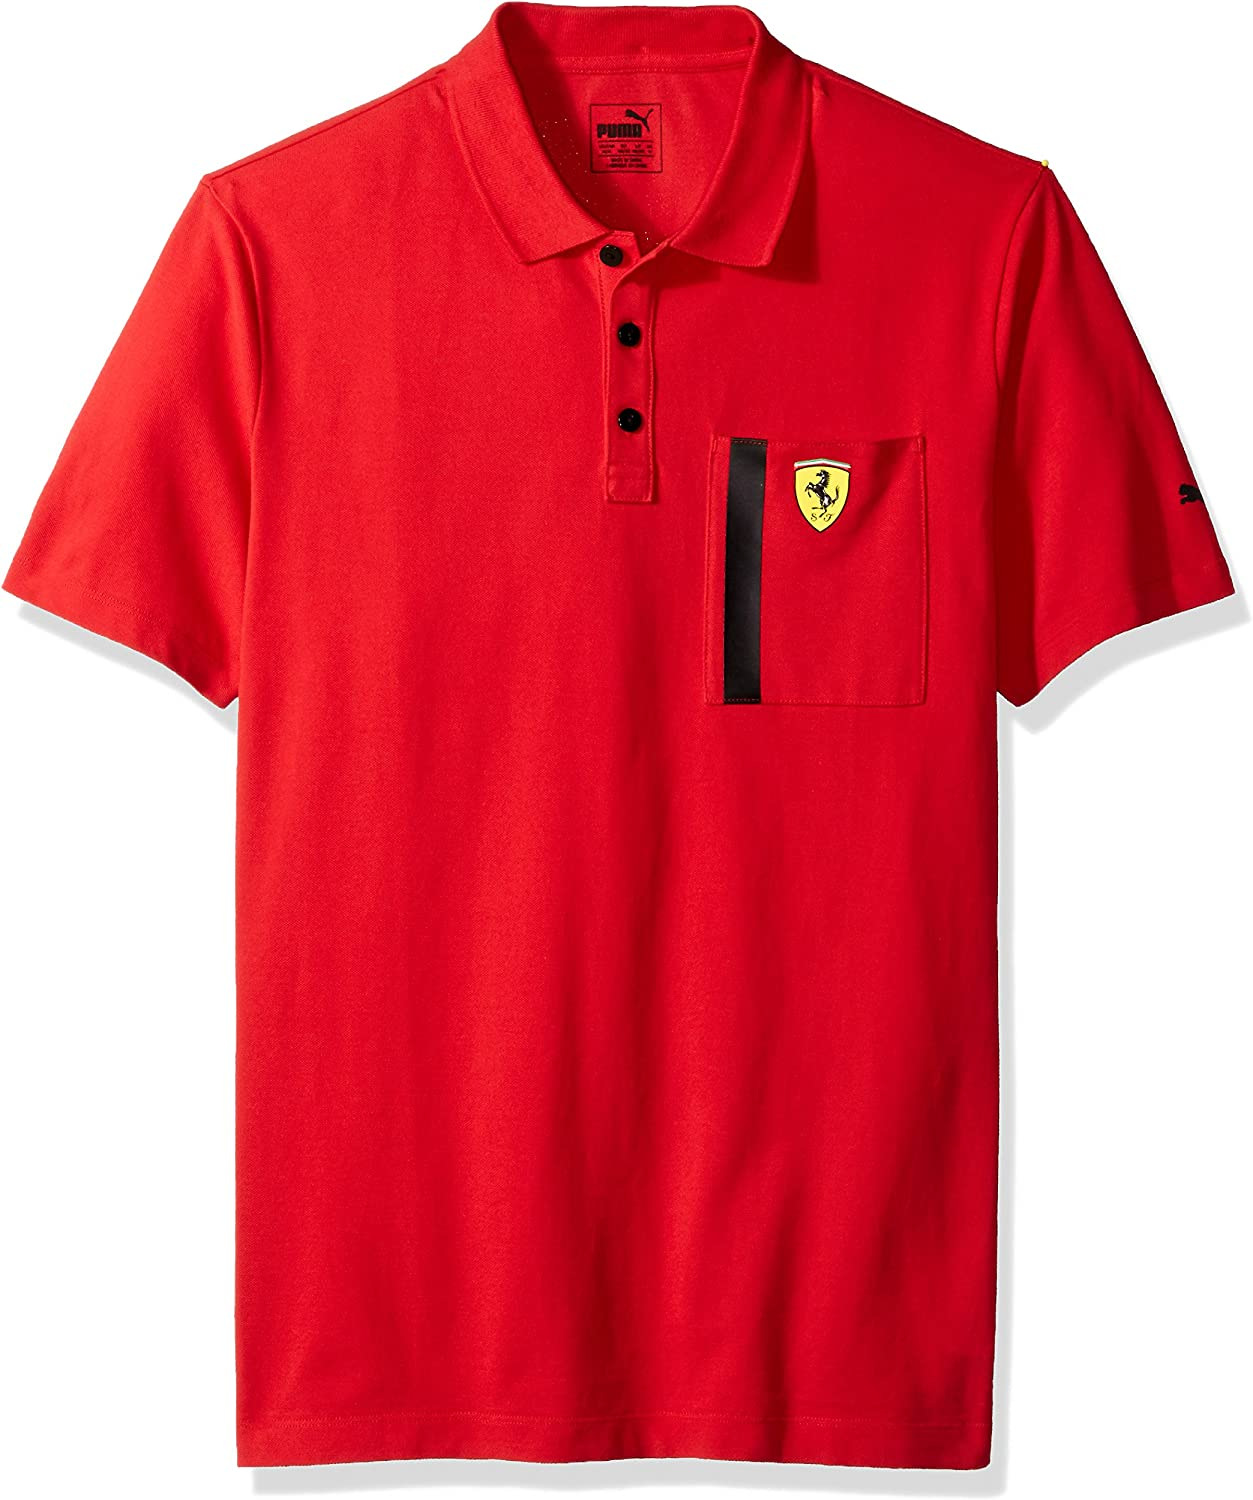 PUMA Mens Scuderia Ferrari Polo, Red, S: Amazon.es: Ropa y accesorios